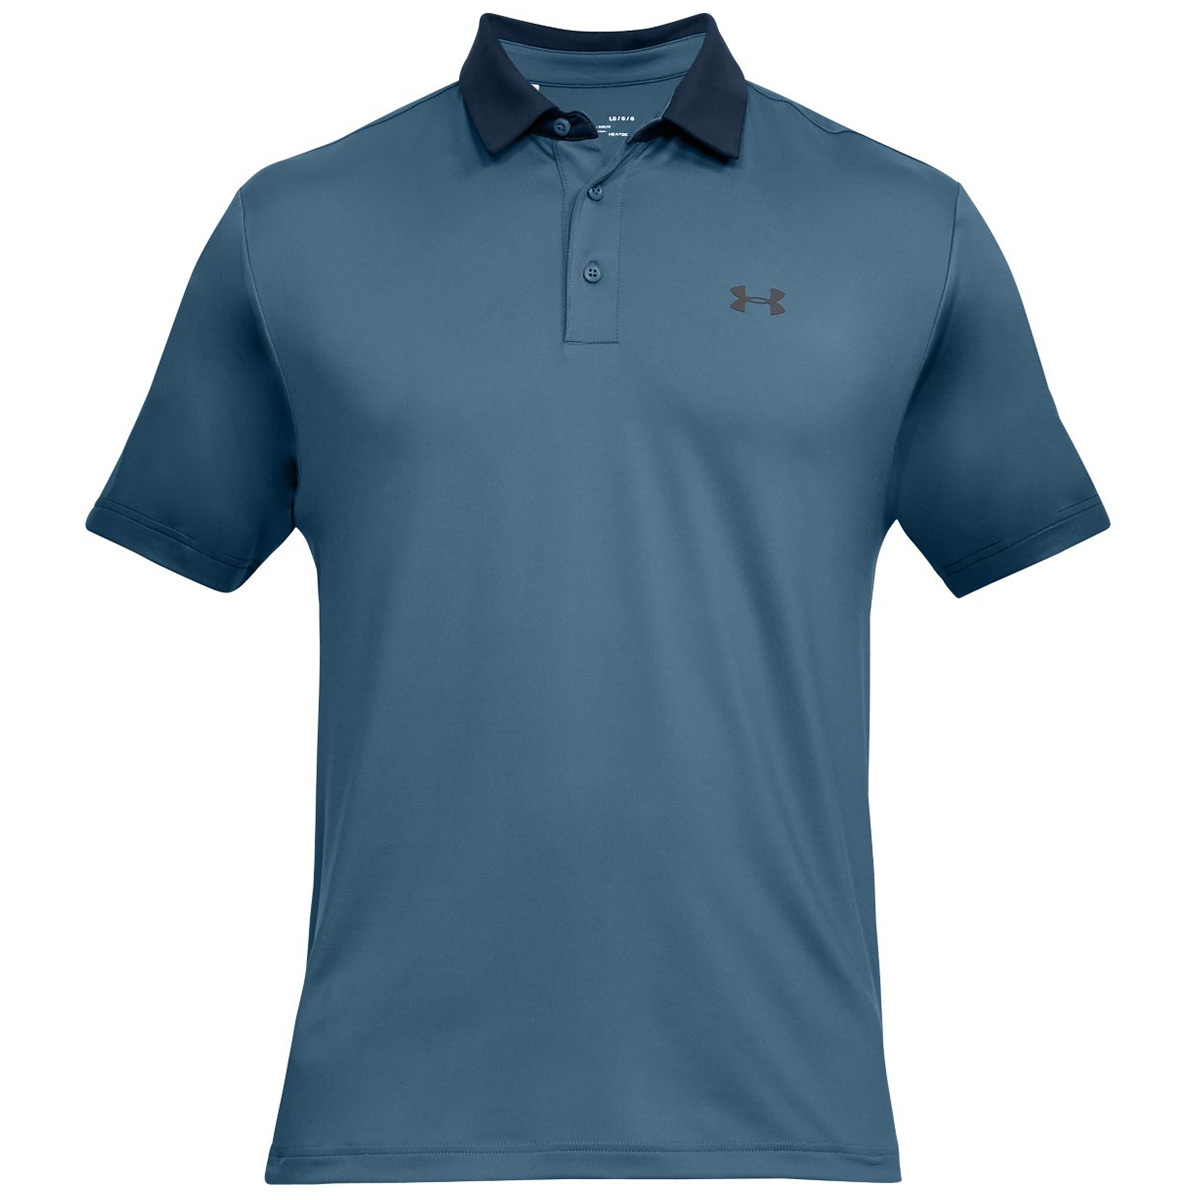 Under-Armour-Mens-UA-Playoff-Performance-Golf-Polo-Shirt-42-OFF-RRP thumbnail 4